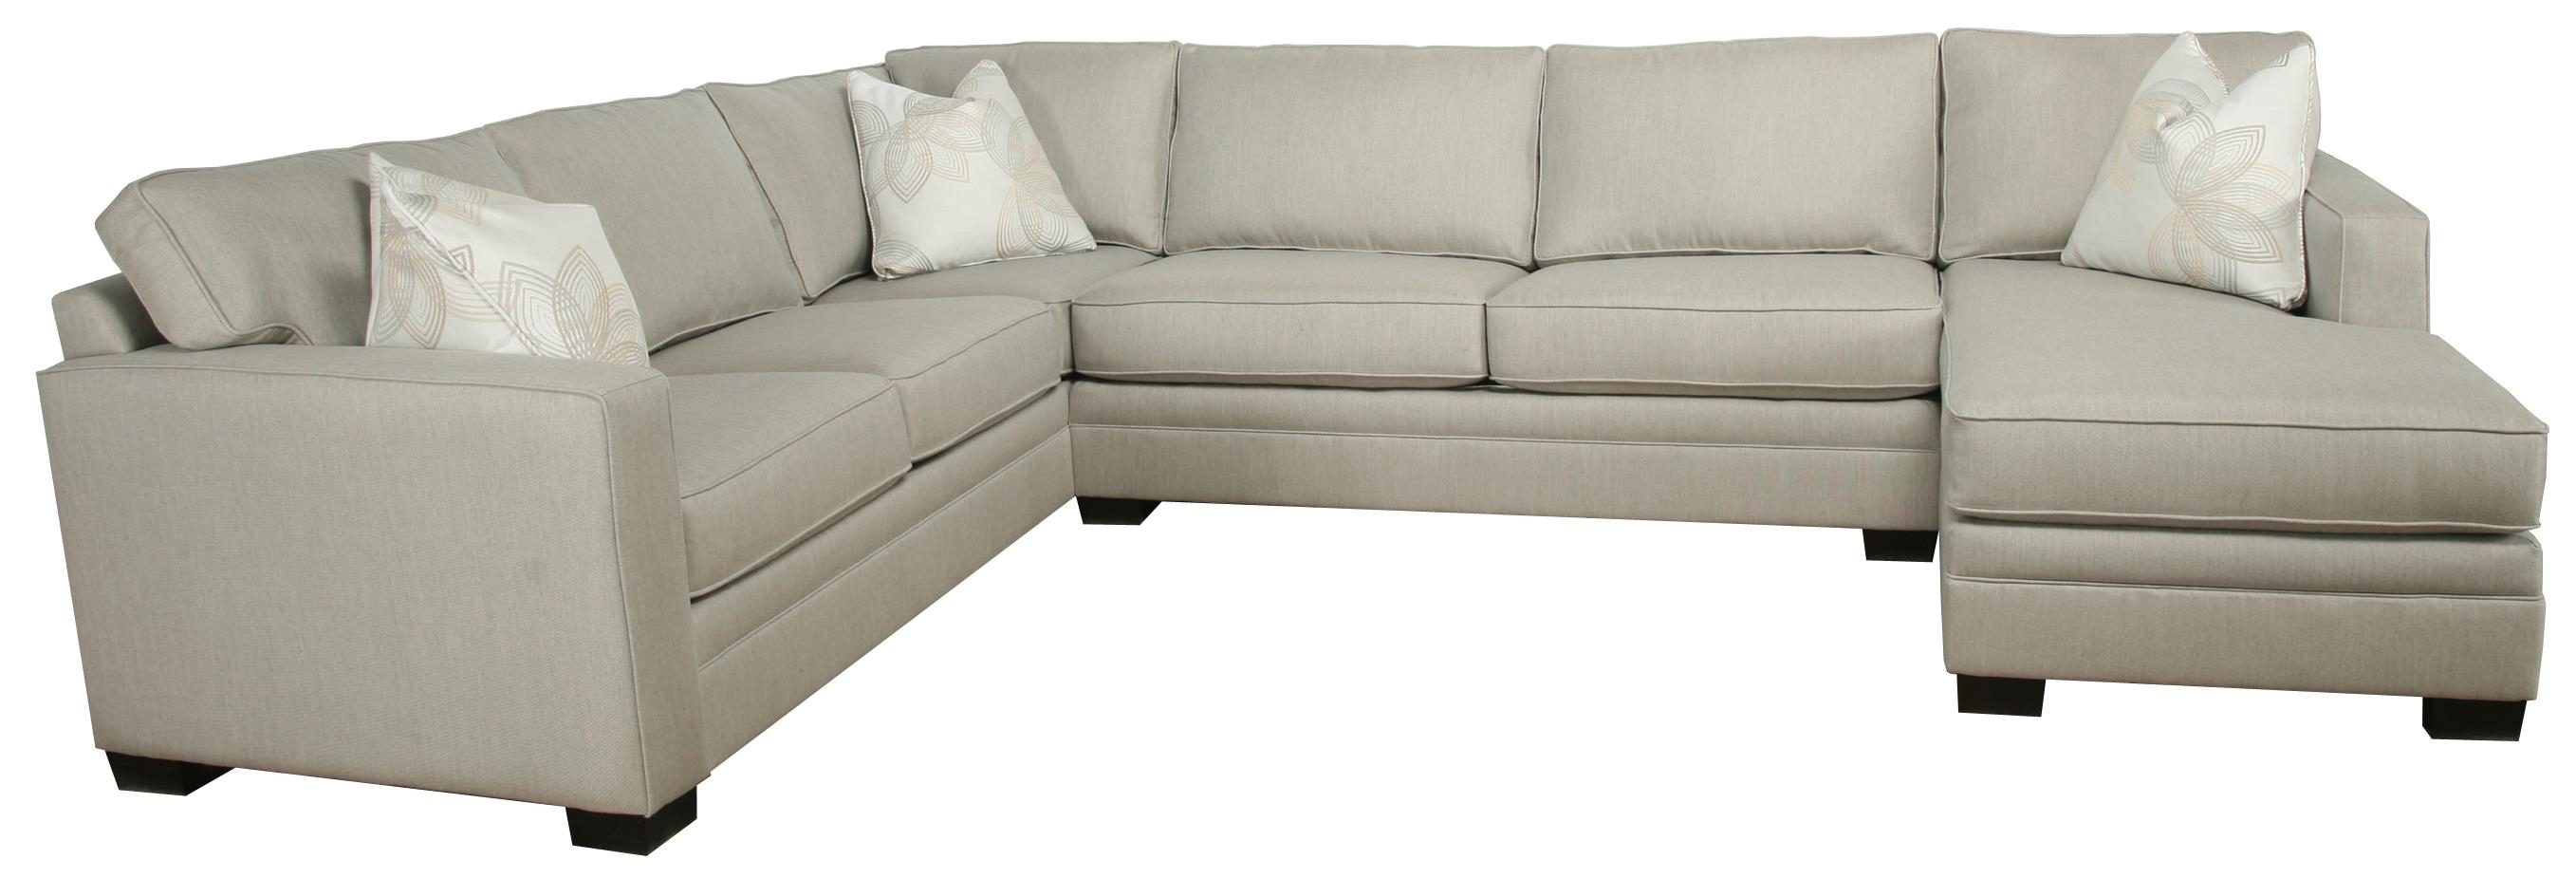 Contemporary 3 Piece Sectional With Chaise Bauhaus Wolf And Throughout Bauhaus Sectional Sofas (Image 10 of 15)